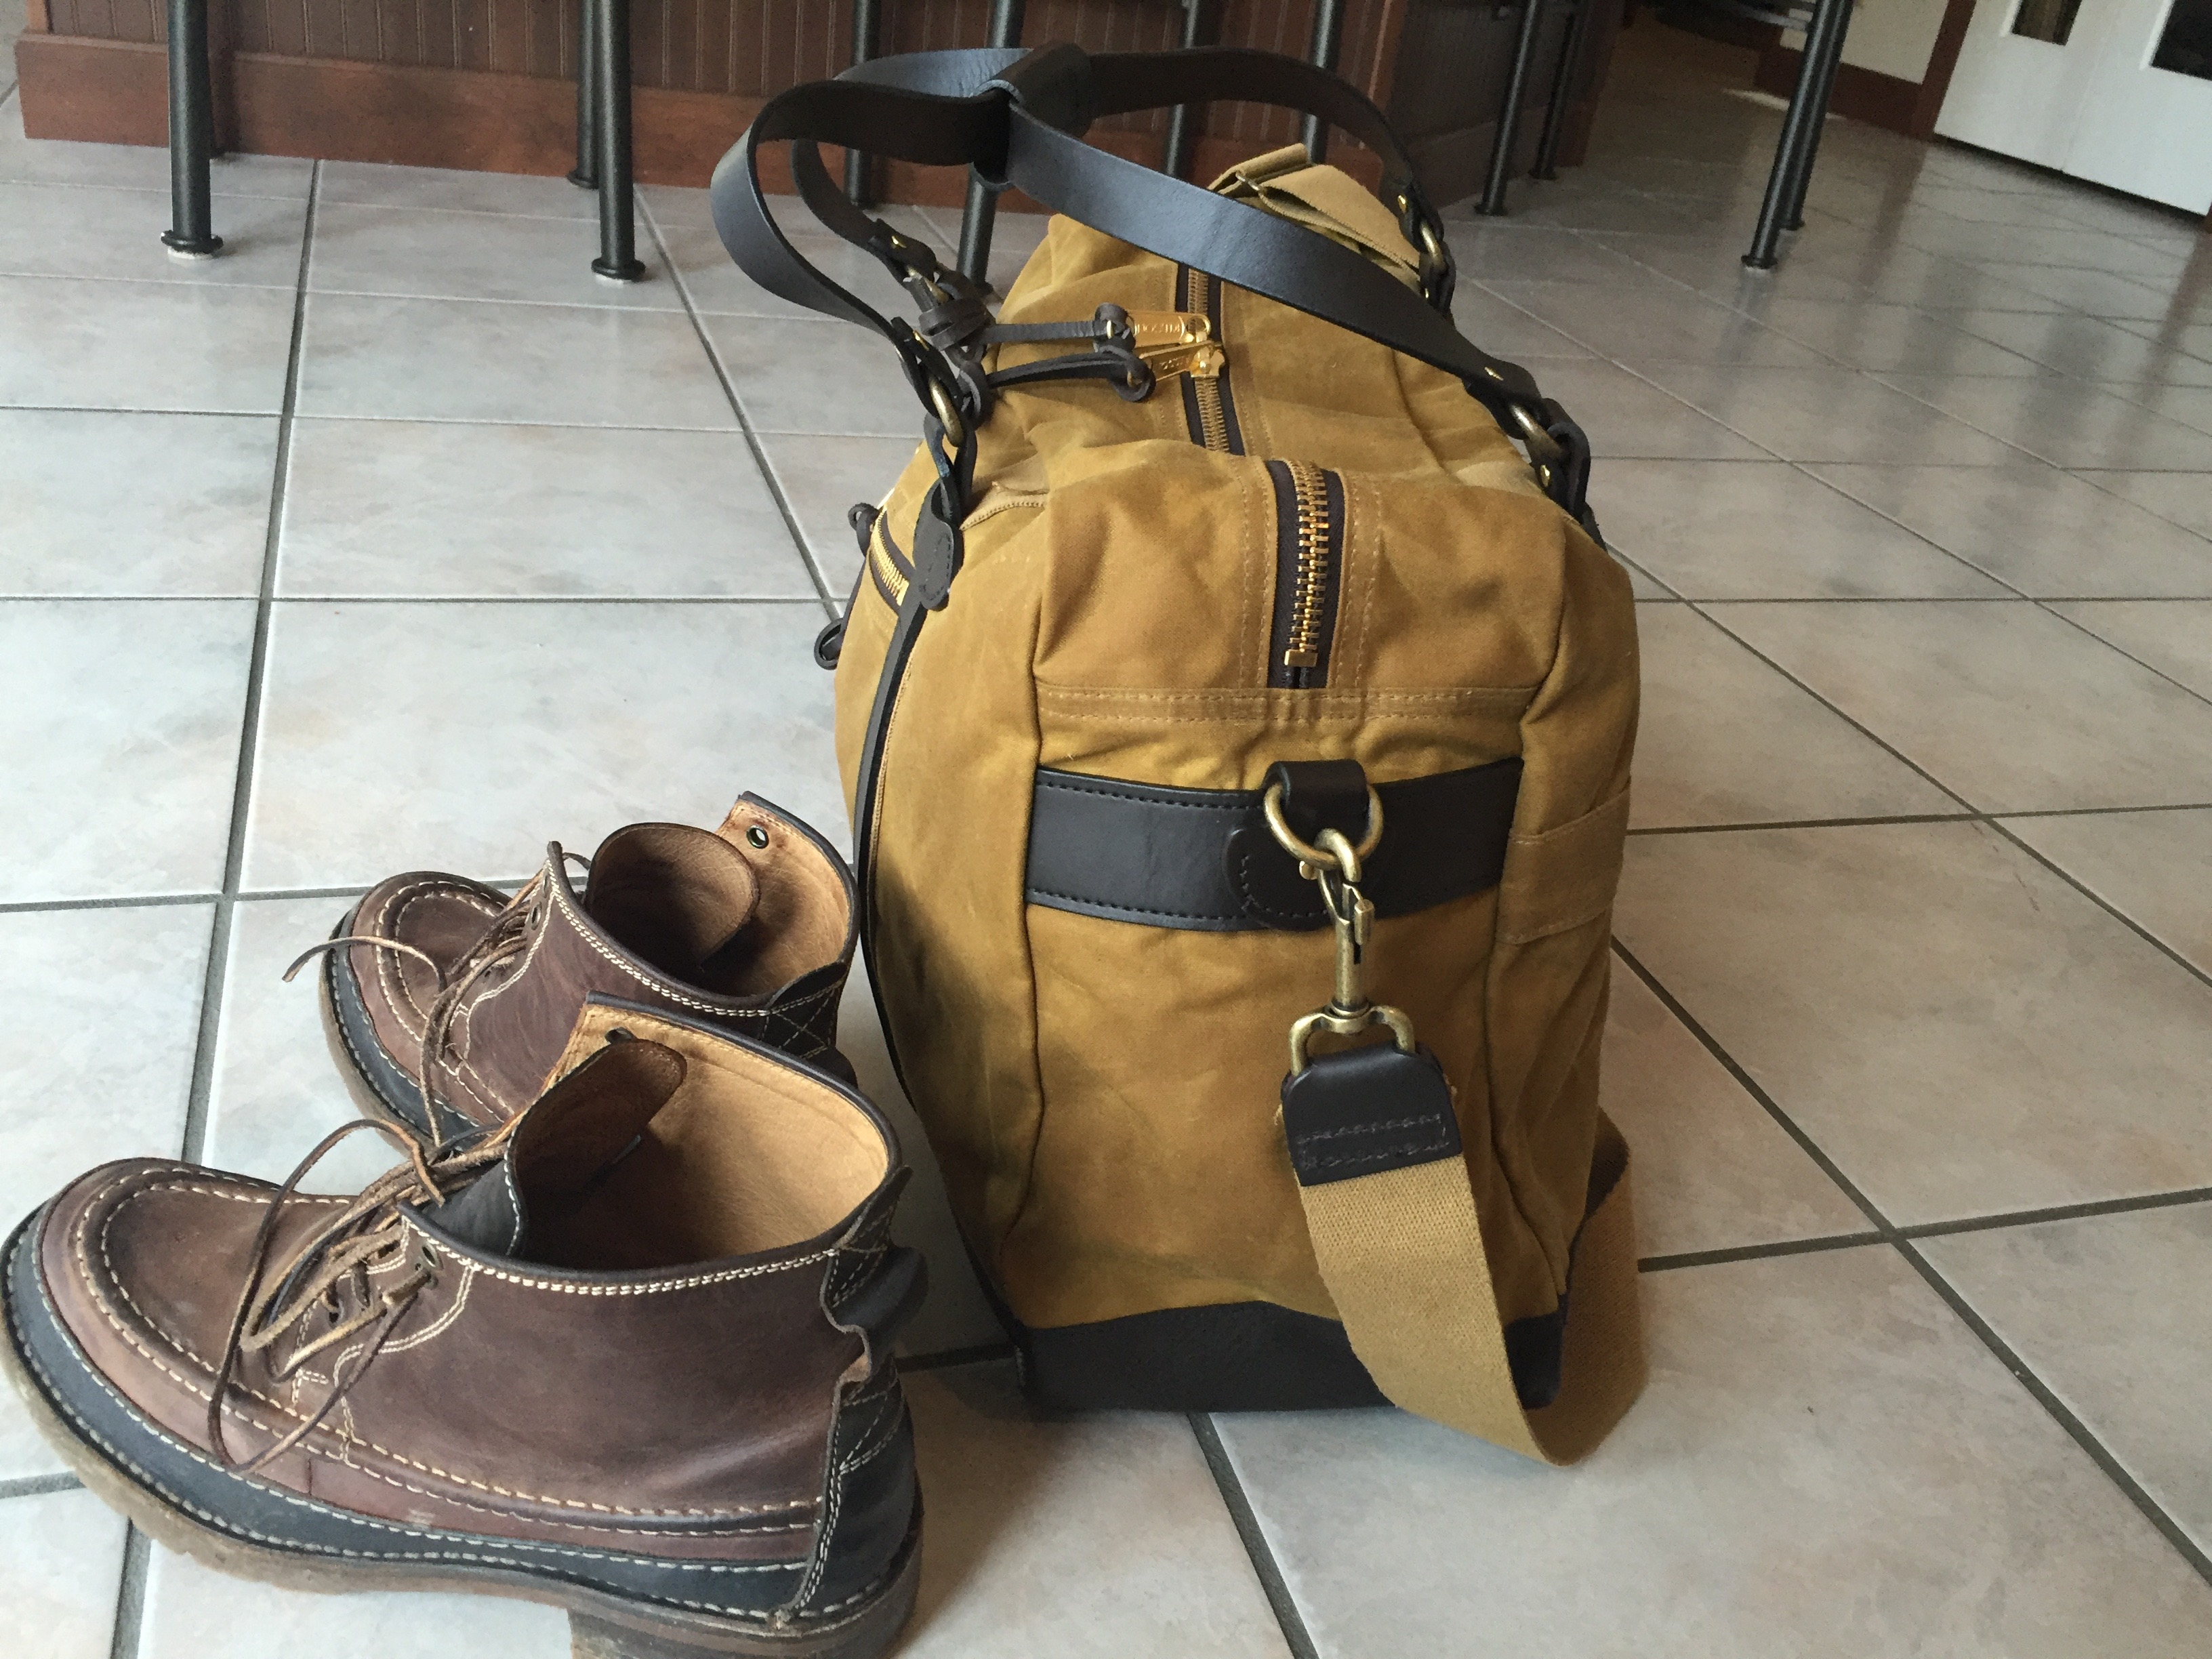 Here Is The Bag Next To My Boots So You Can Get A Feel For Size